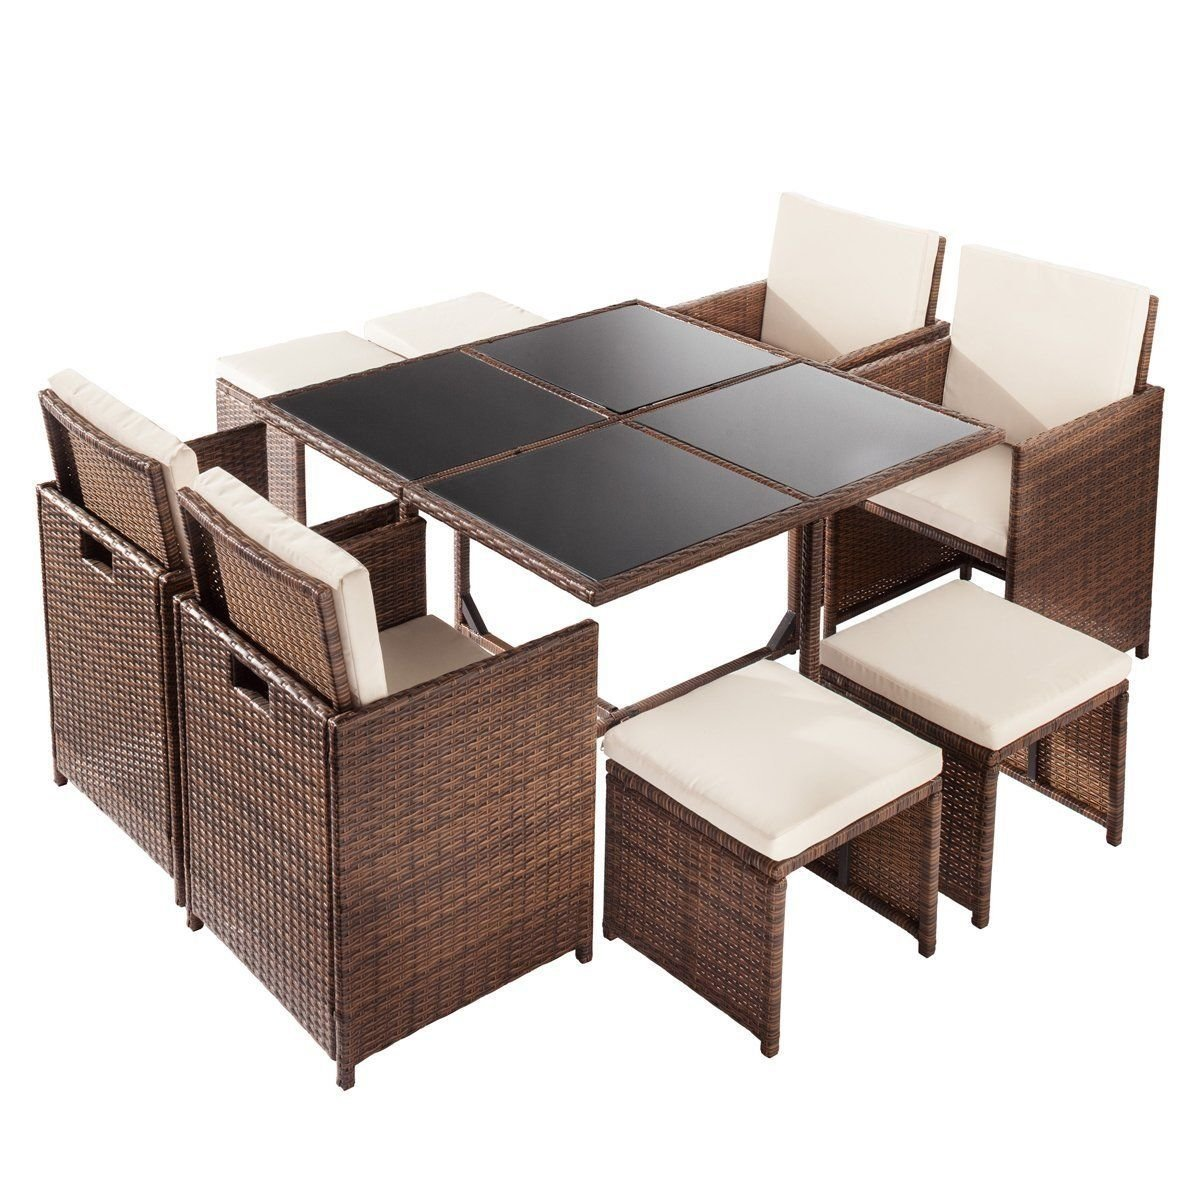 KCHEX>>9 PC Mix Brown Patio Garden Rattan Wicker Sofa Set Furniture Cushioned W/Ottoman>>with The Modern and Durable Design, This Rattan Furniture Set Will fits for Any Indoor and Outdoor Space